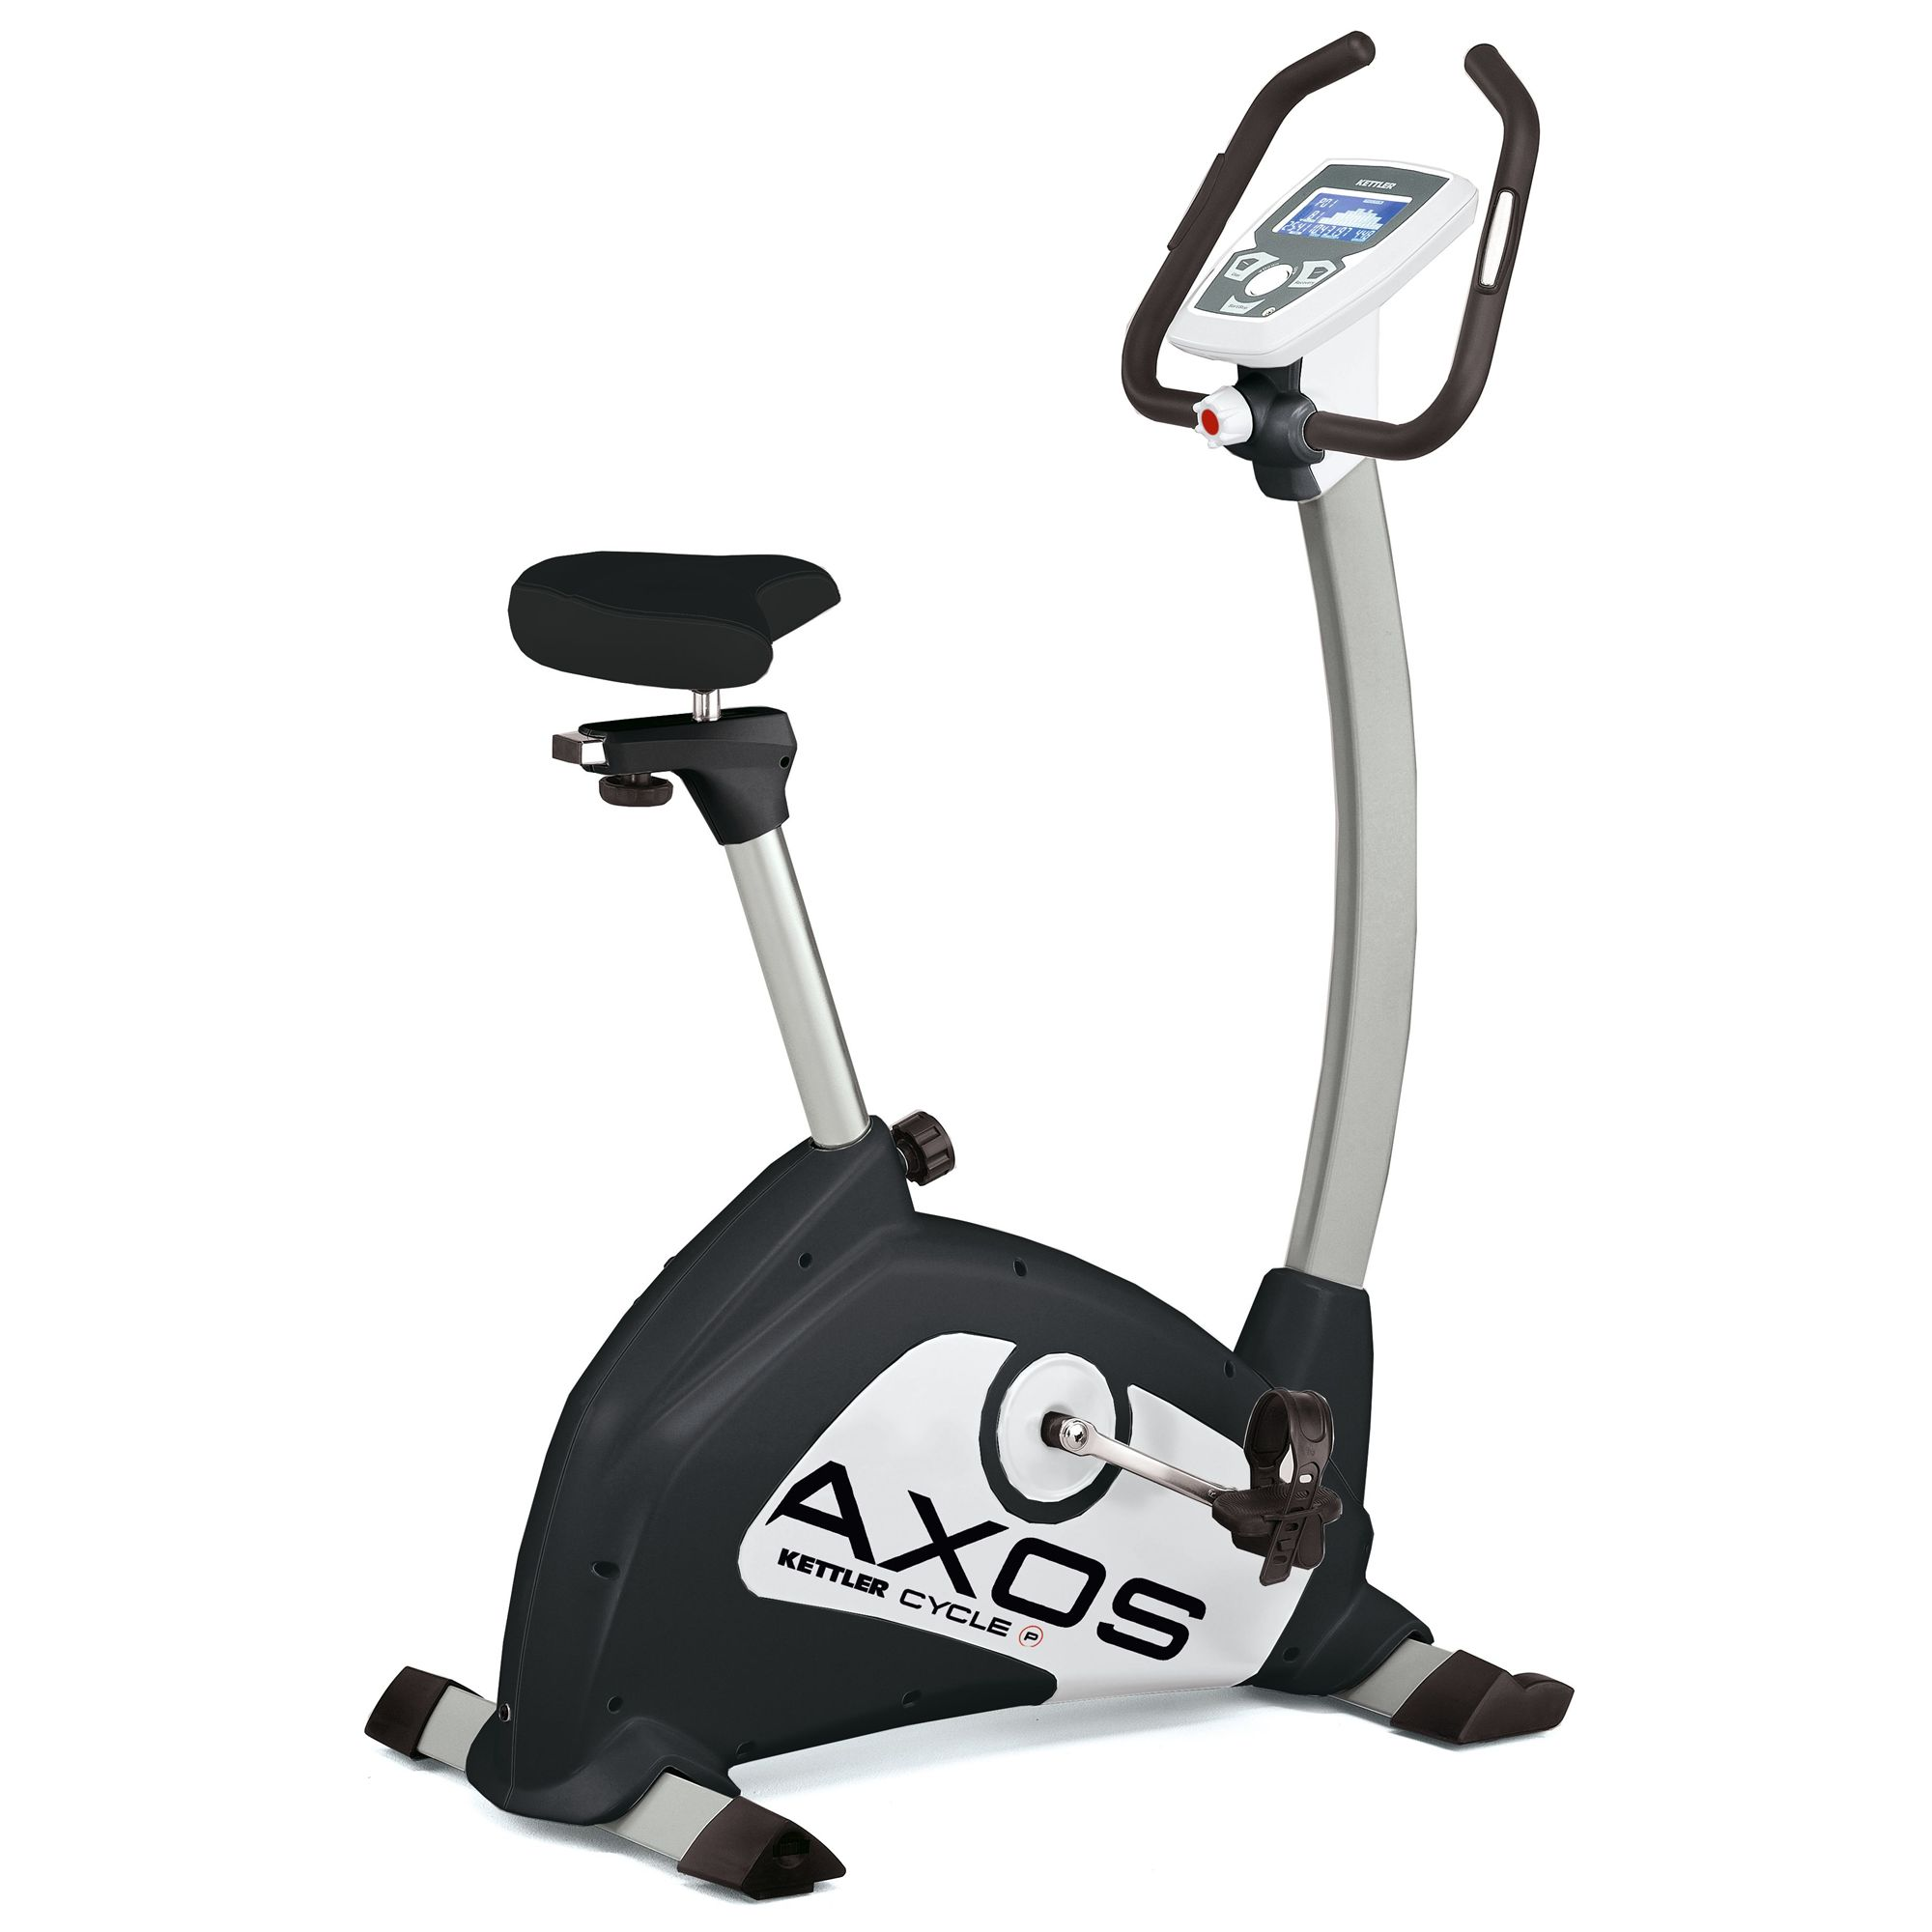 Kettler Fitness Kettler Cycle P Exercise Bike Sweatband